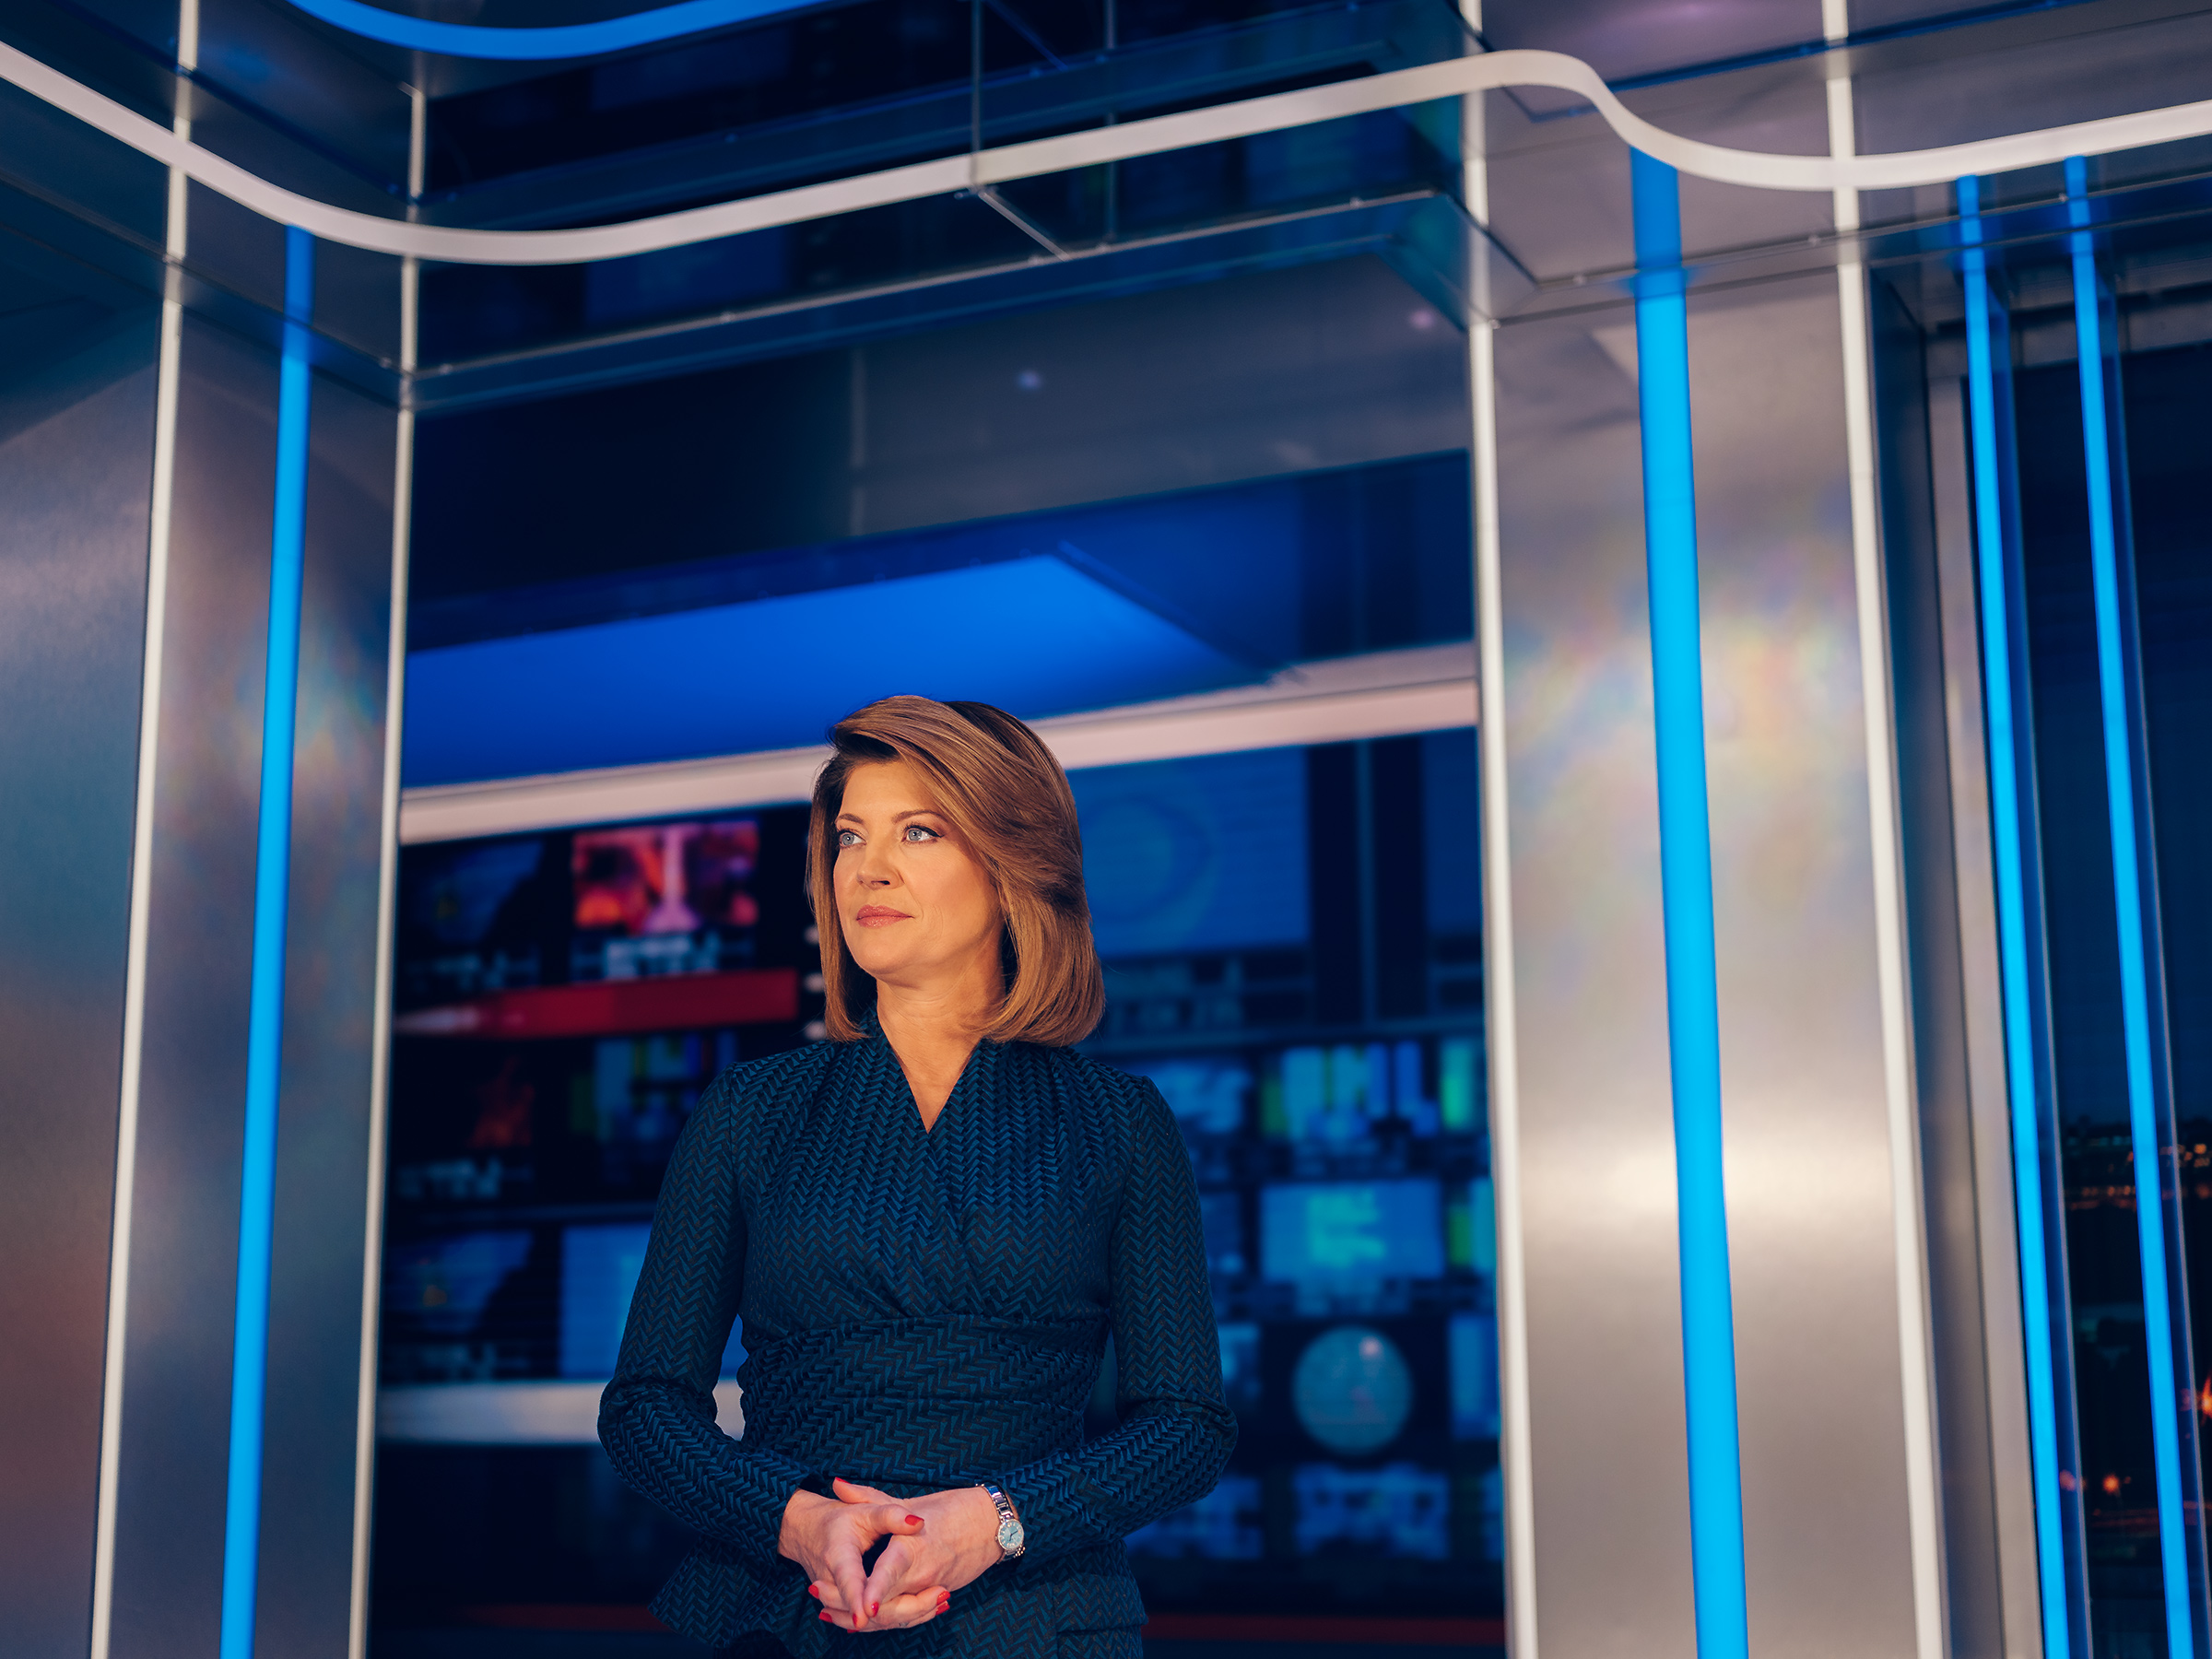 I've never seen so much cultural change in such a short period of time. —Norah O'Donnell, on CBS News under its new president, Susan Zirinsky